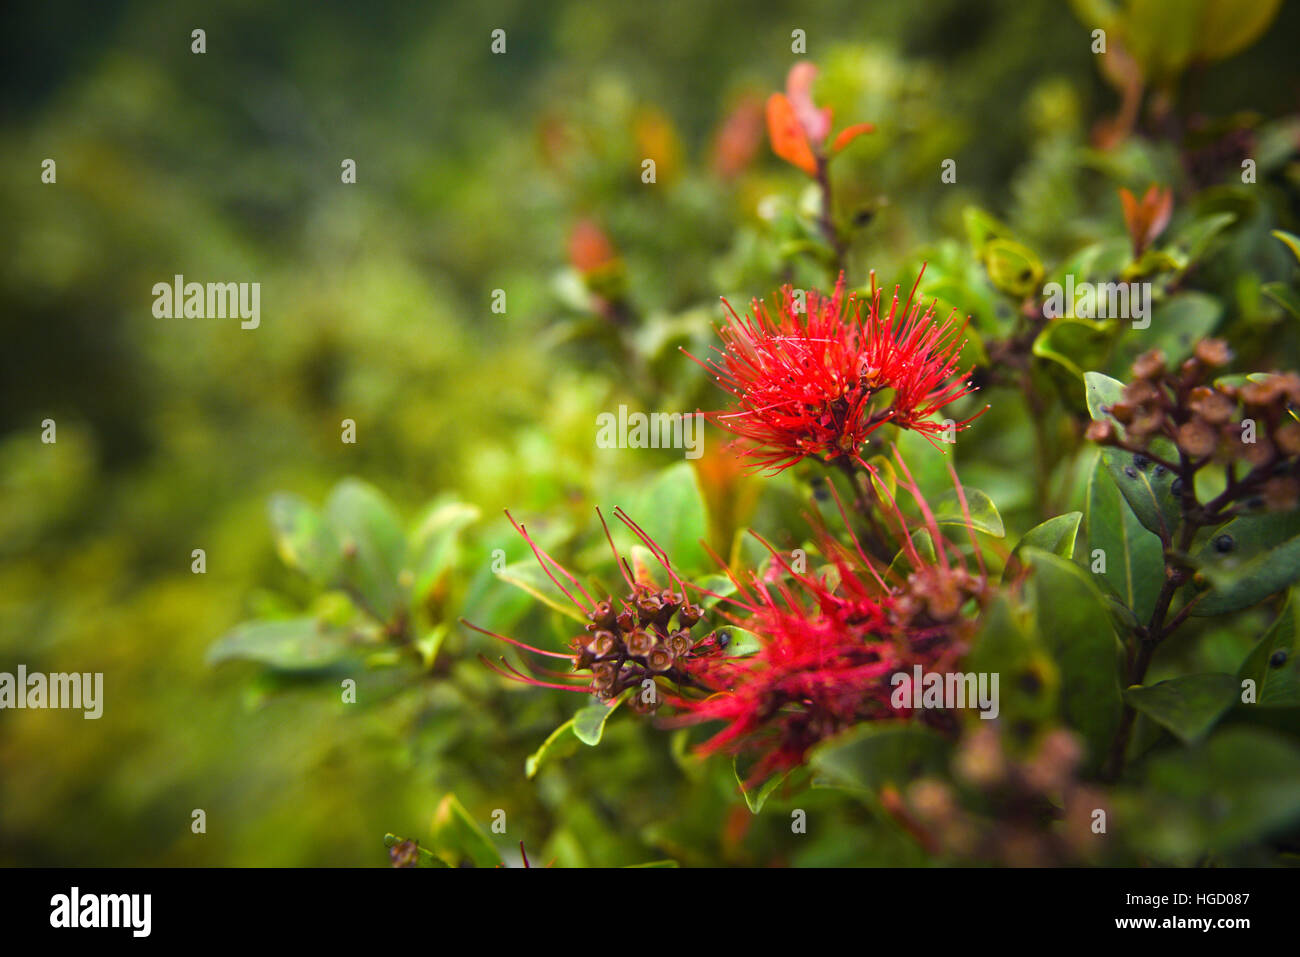 Hawaiian flower stock photos hawaiian flower stock images alamy ohio lehua hawaiian flower these flowers can be found throughout the jungles of hawaii izmirmasajfo